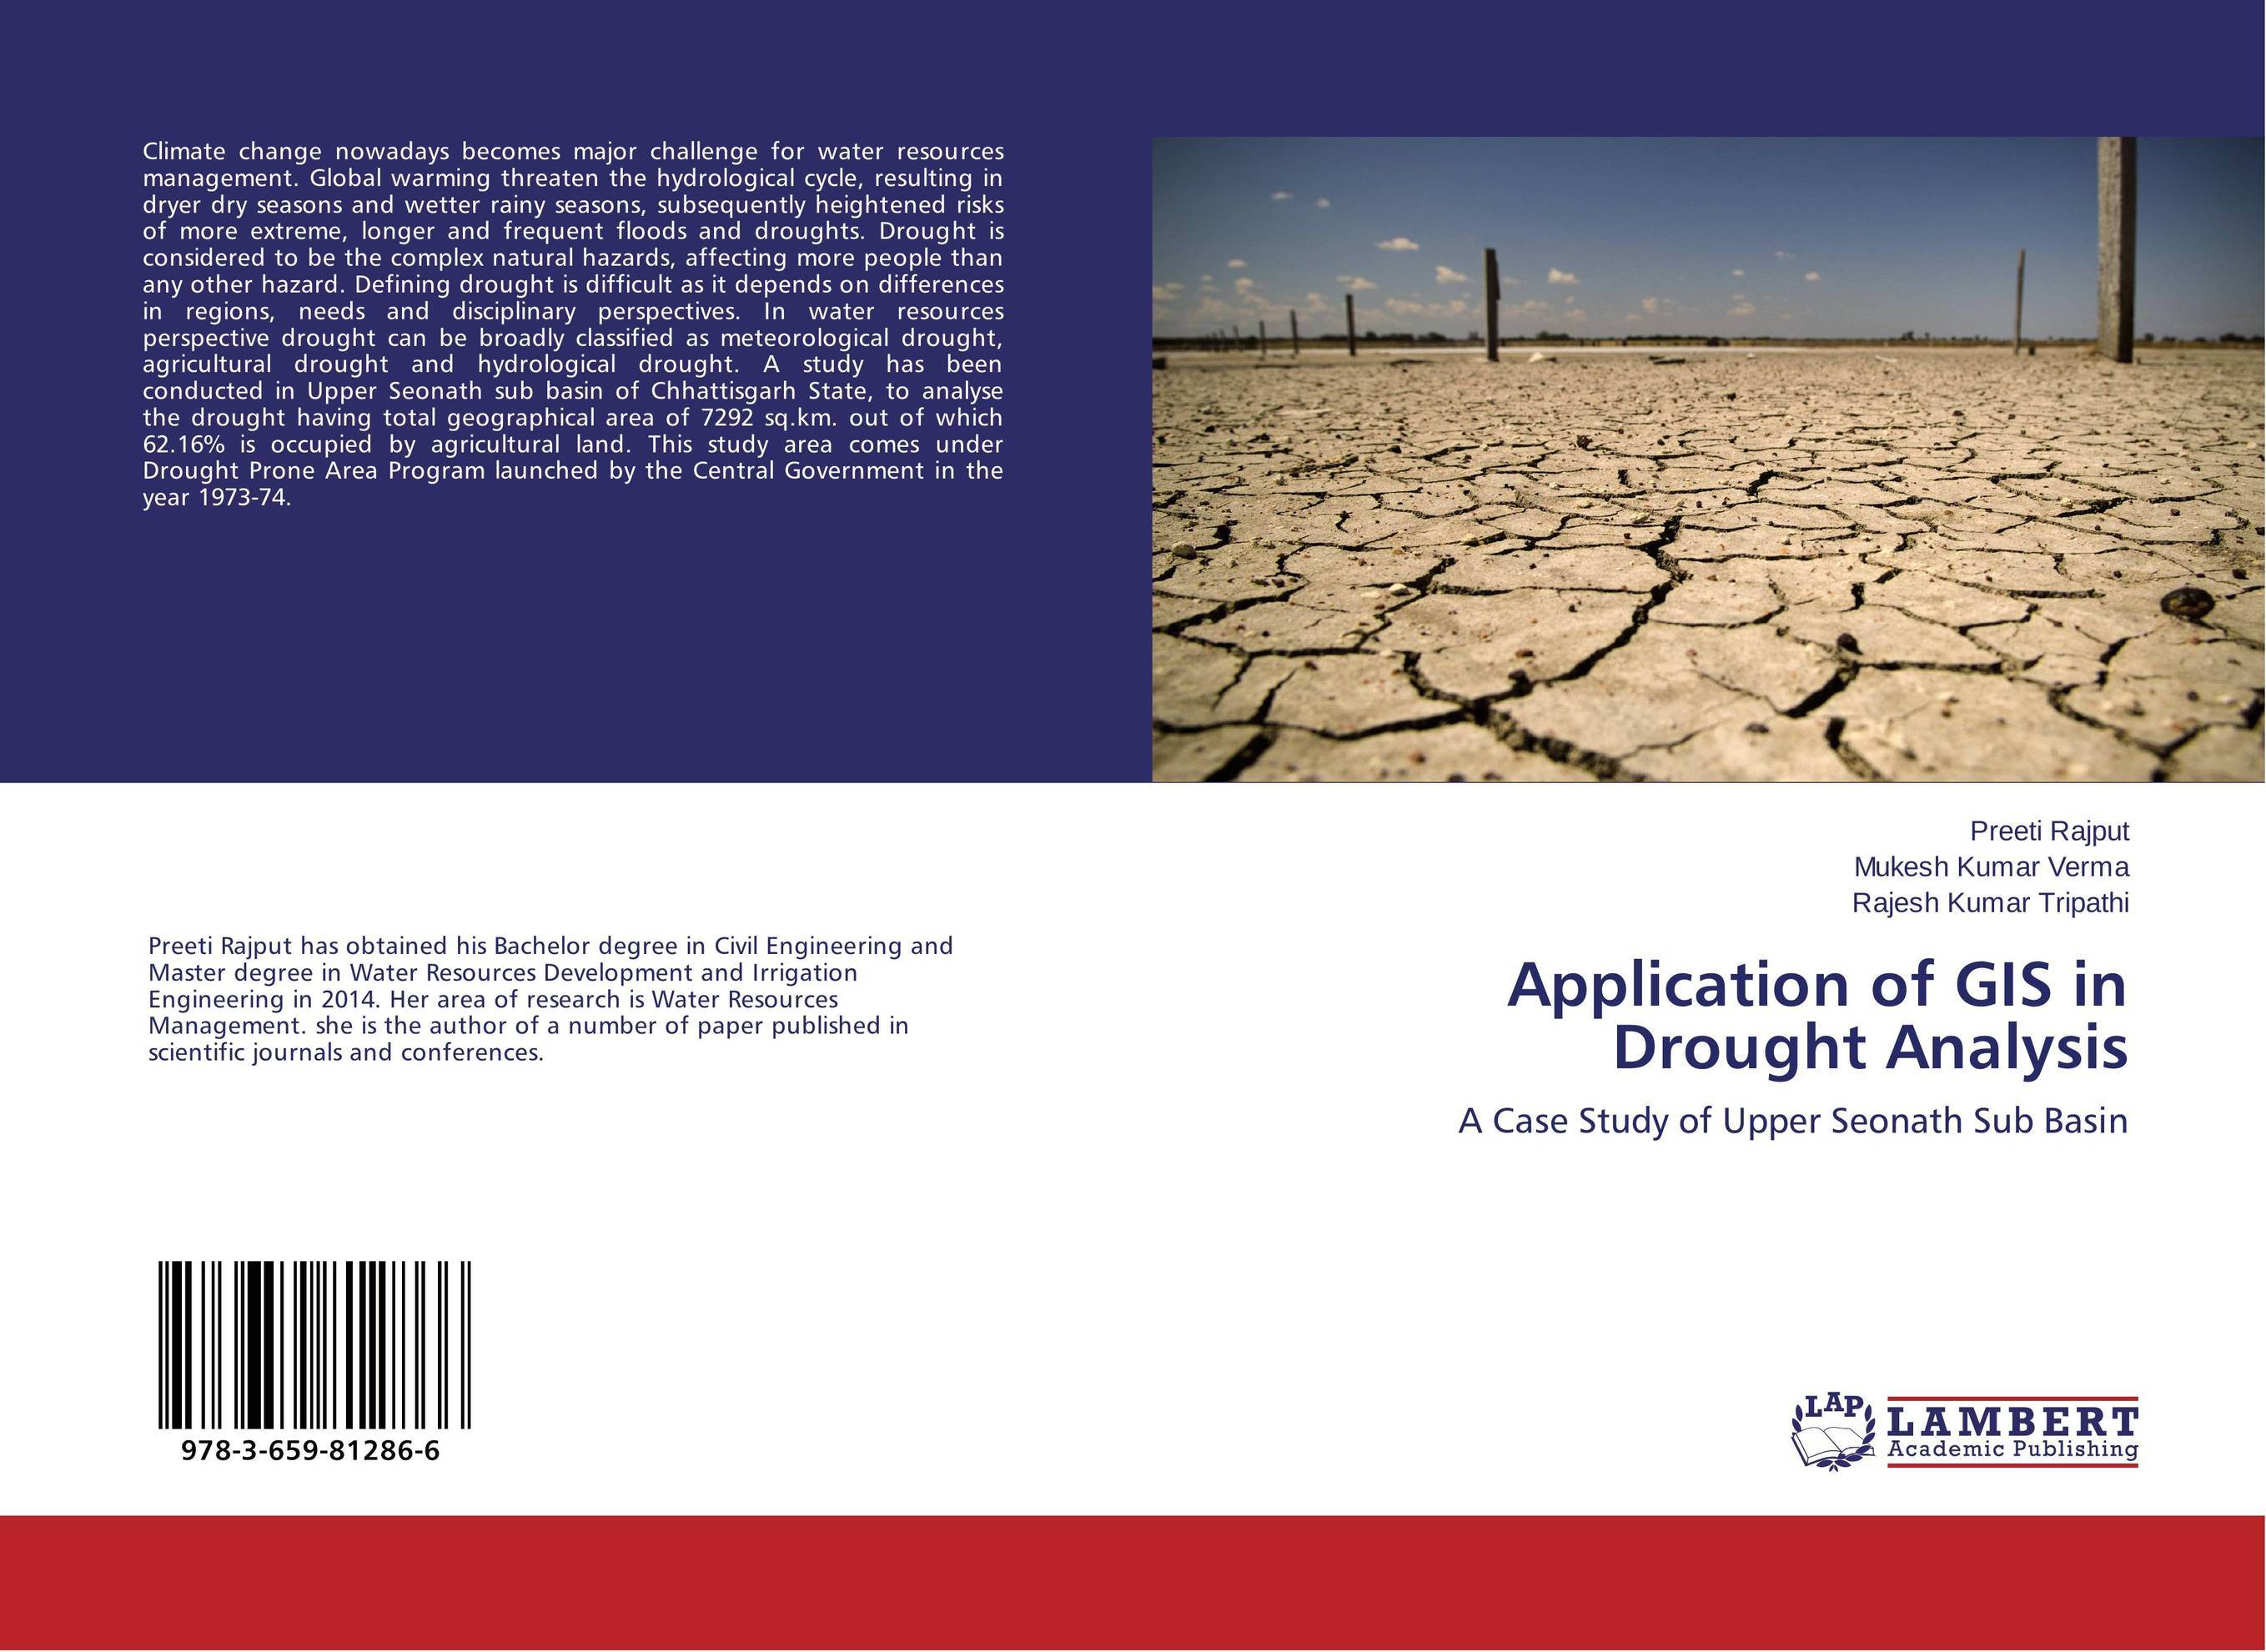 Application of GIS in Drought Analysis analysis fate and removal of pharmaceuticals in the water cycle 50